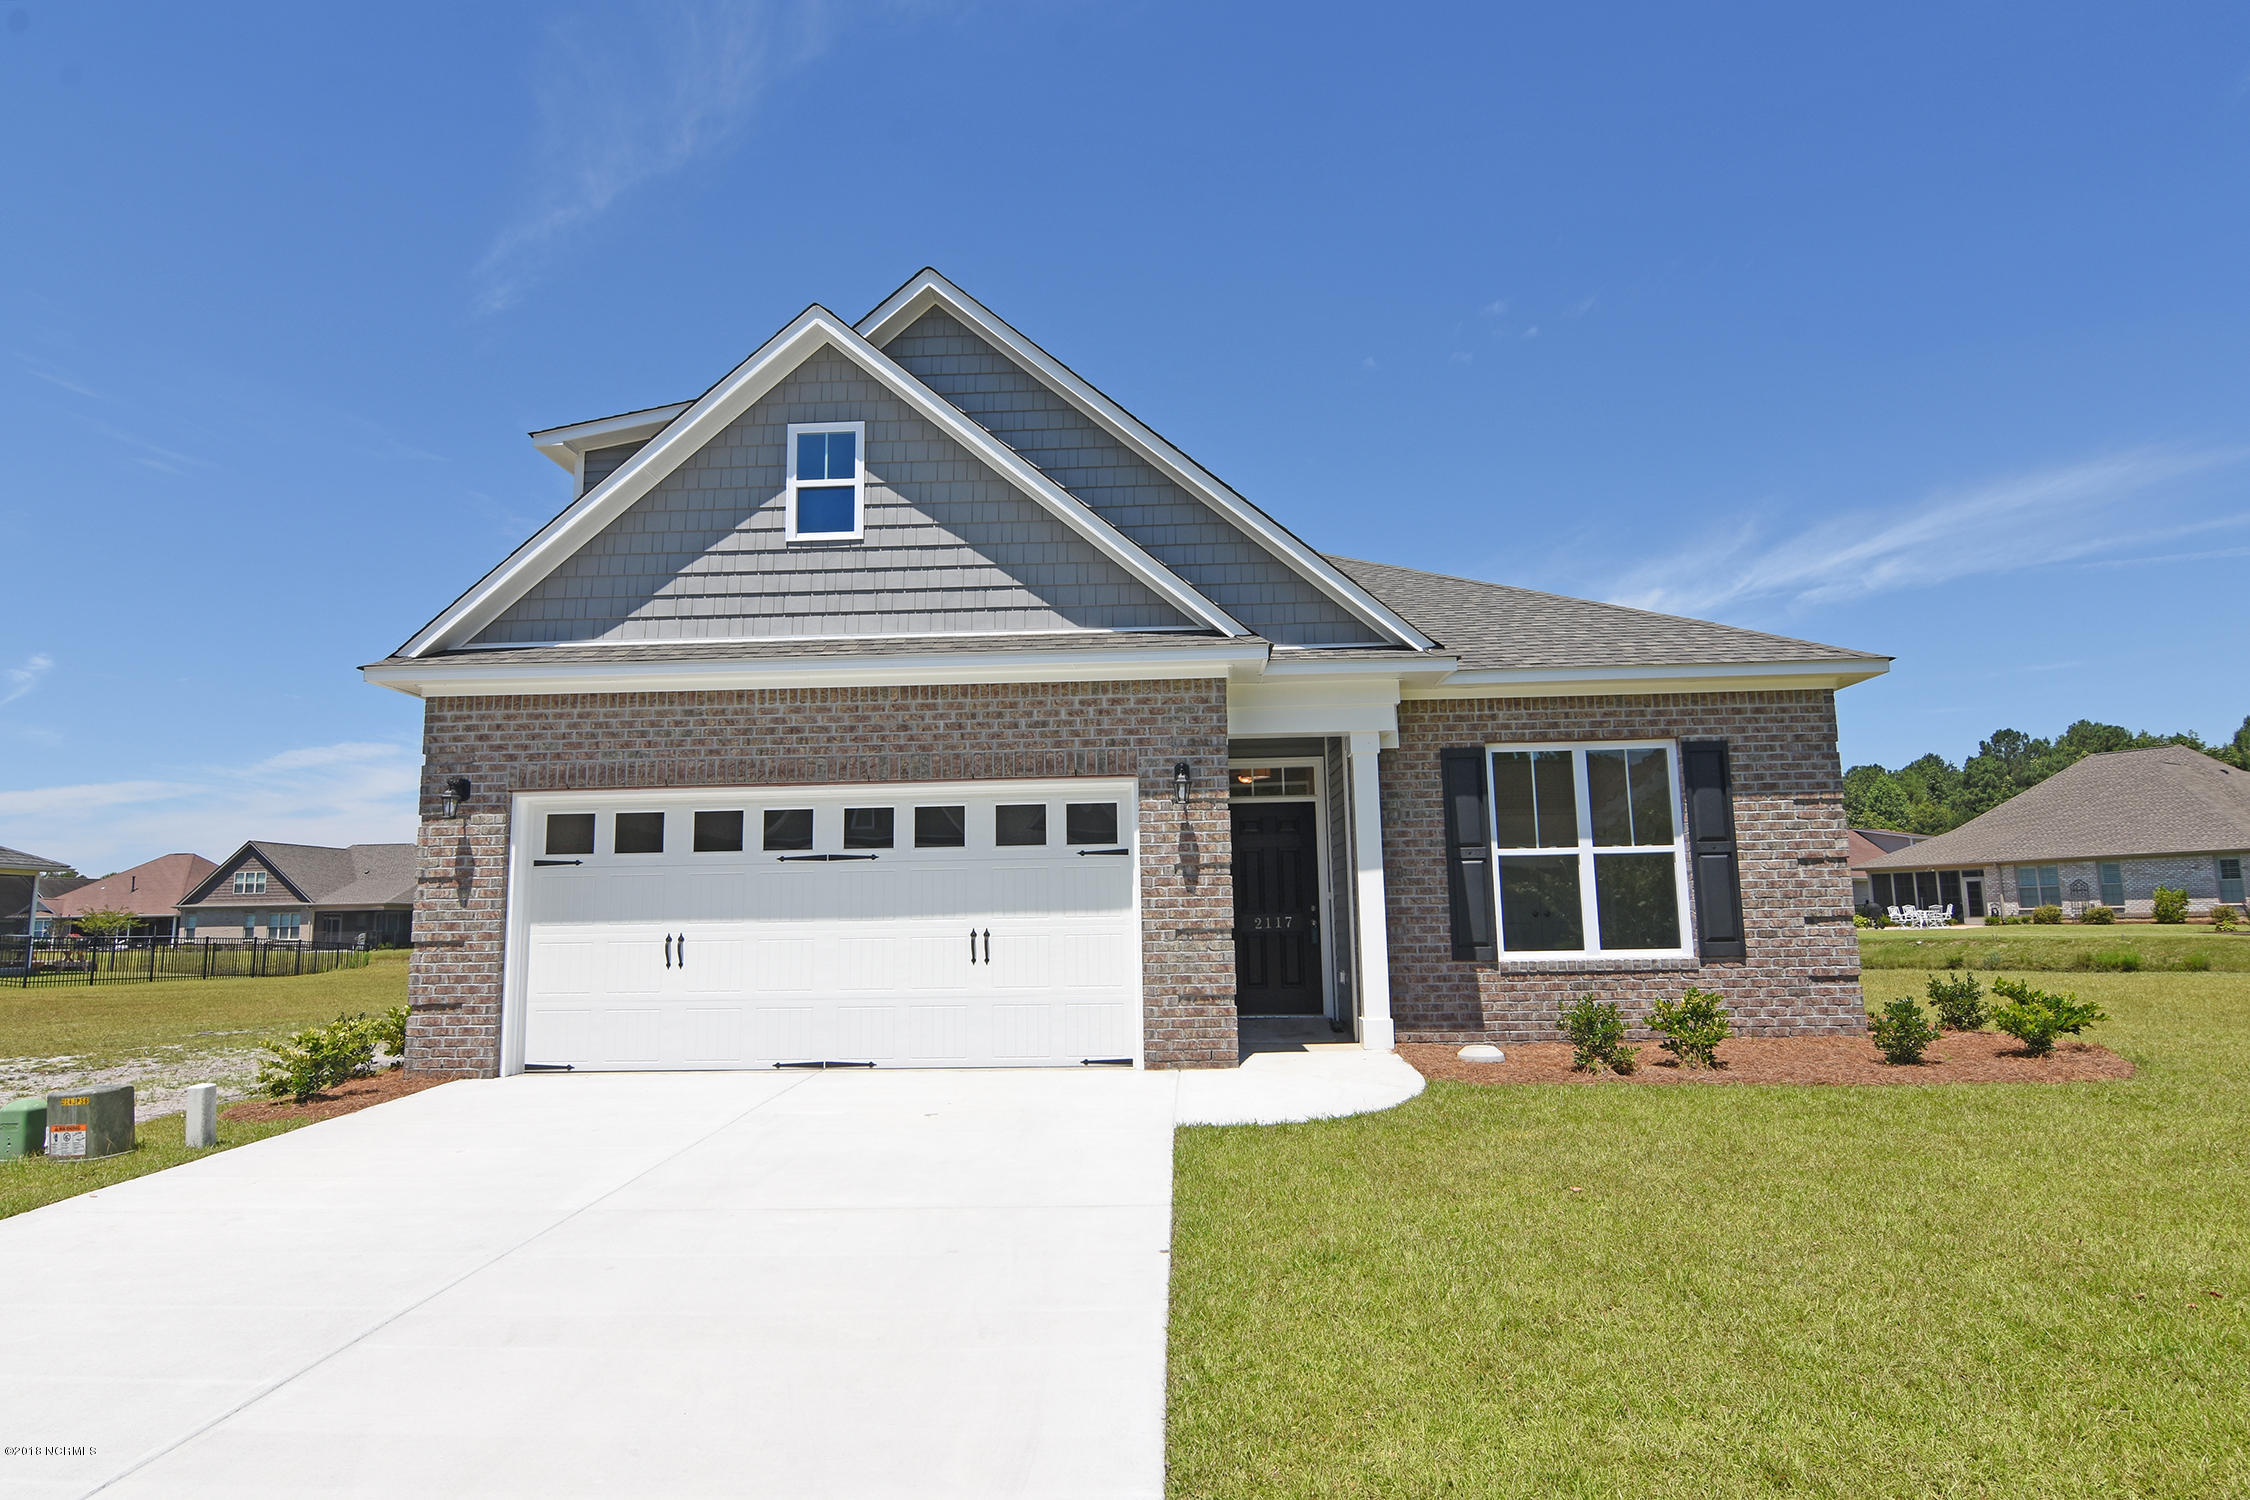 Leland NC New Homes Community Real Estate for Sale from 169000 – Stevens Fine Homes Floor Plans